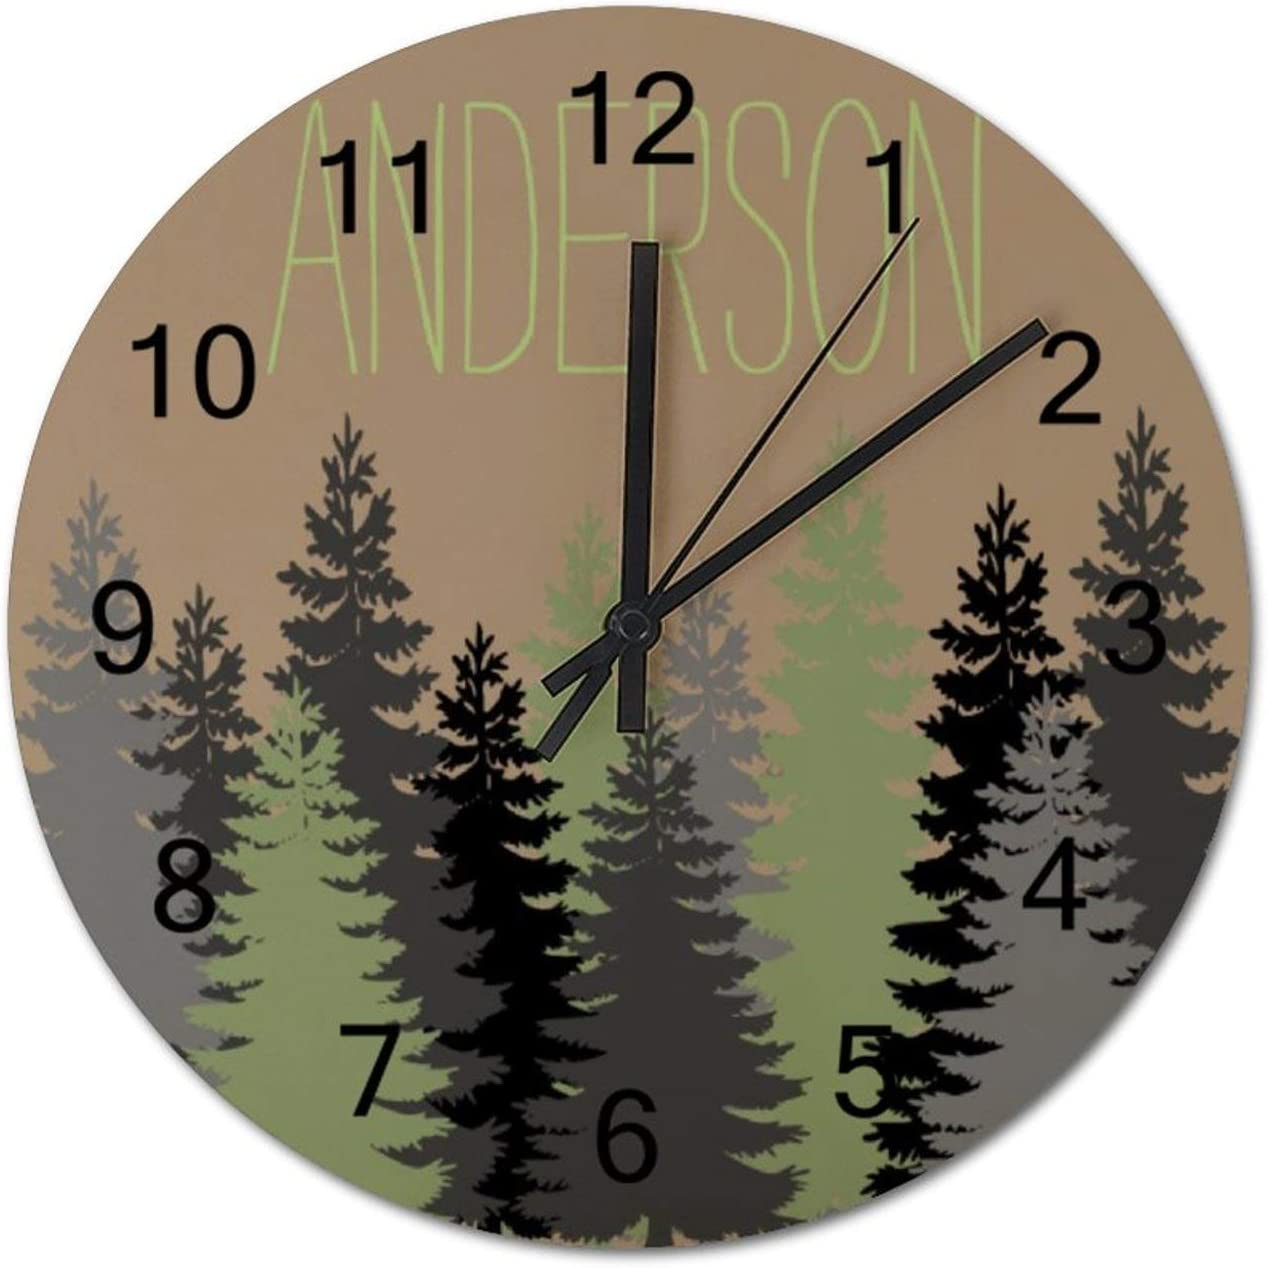 Black Forest Woods Pine Tree Custom Name Round Wall Clock, Rustic Silent Clocks Farmhouse Cabin Country Home Decor Made in USA